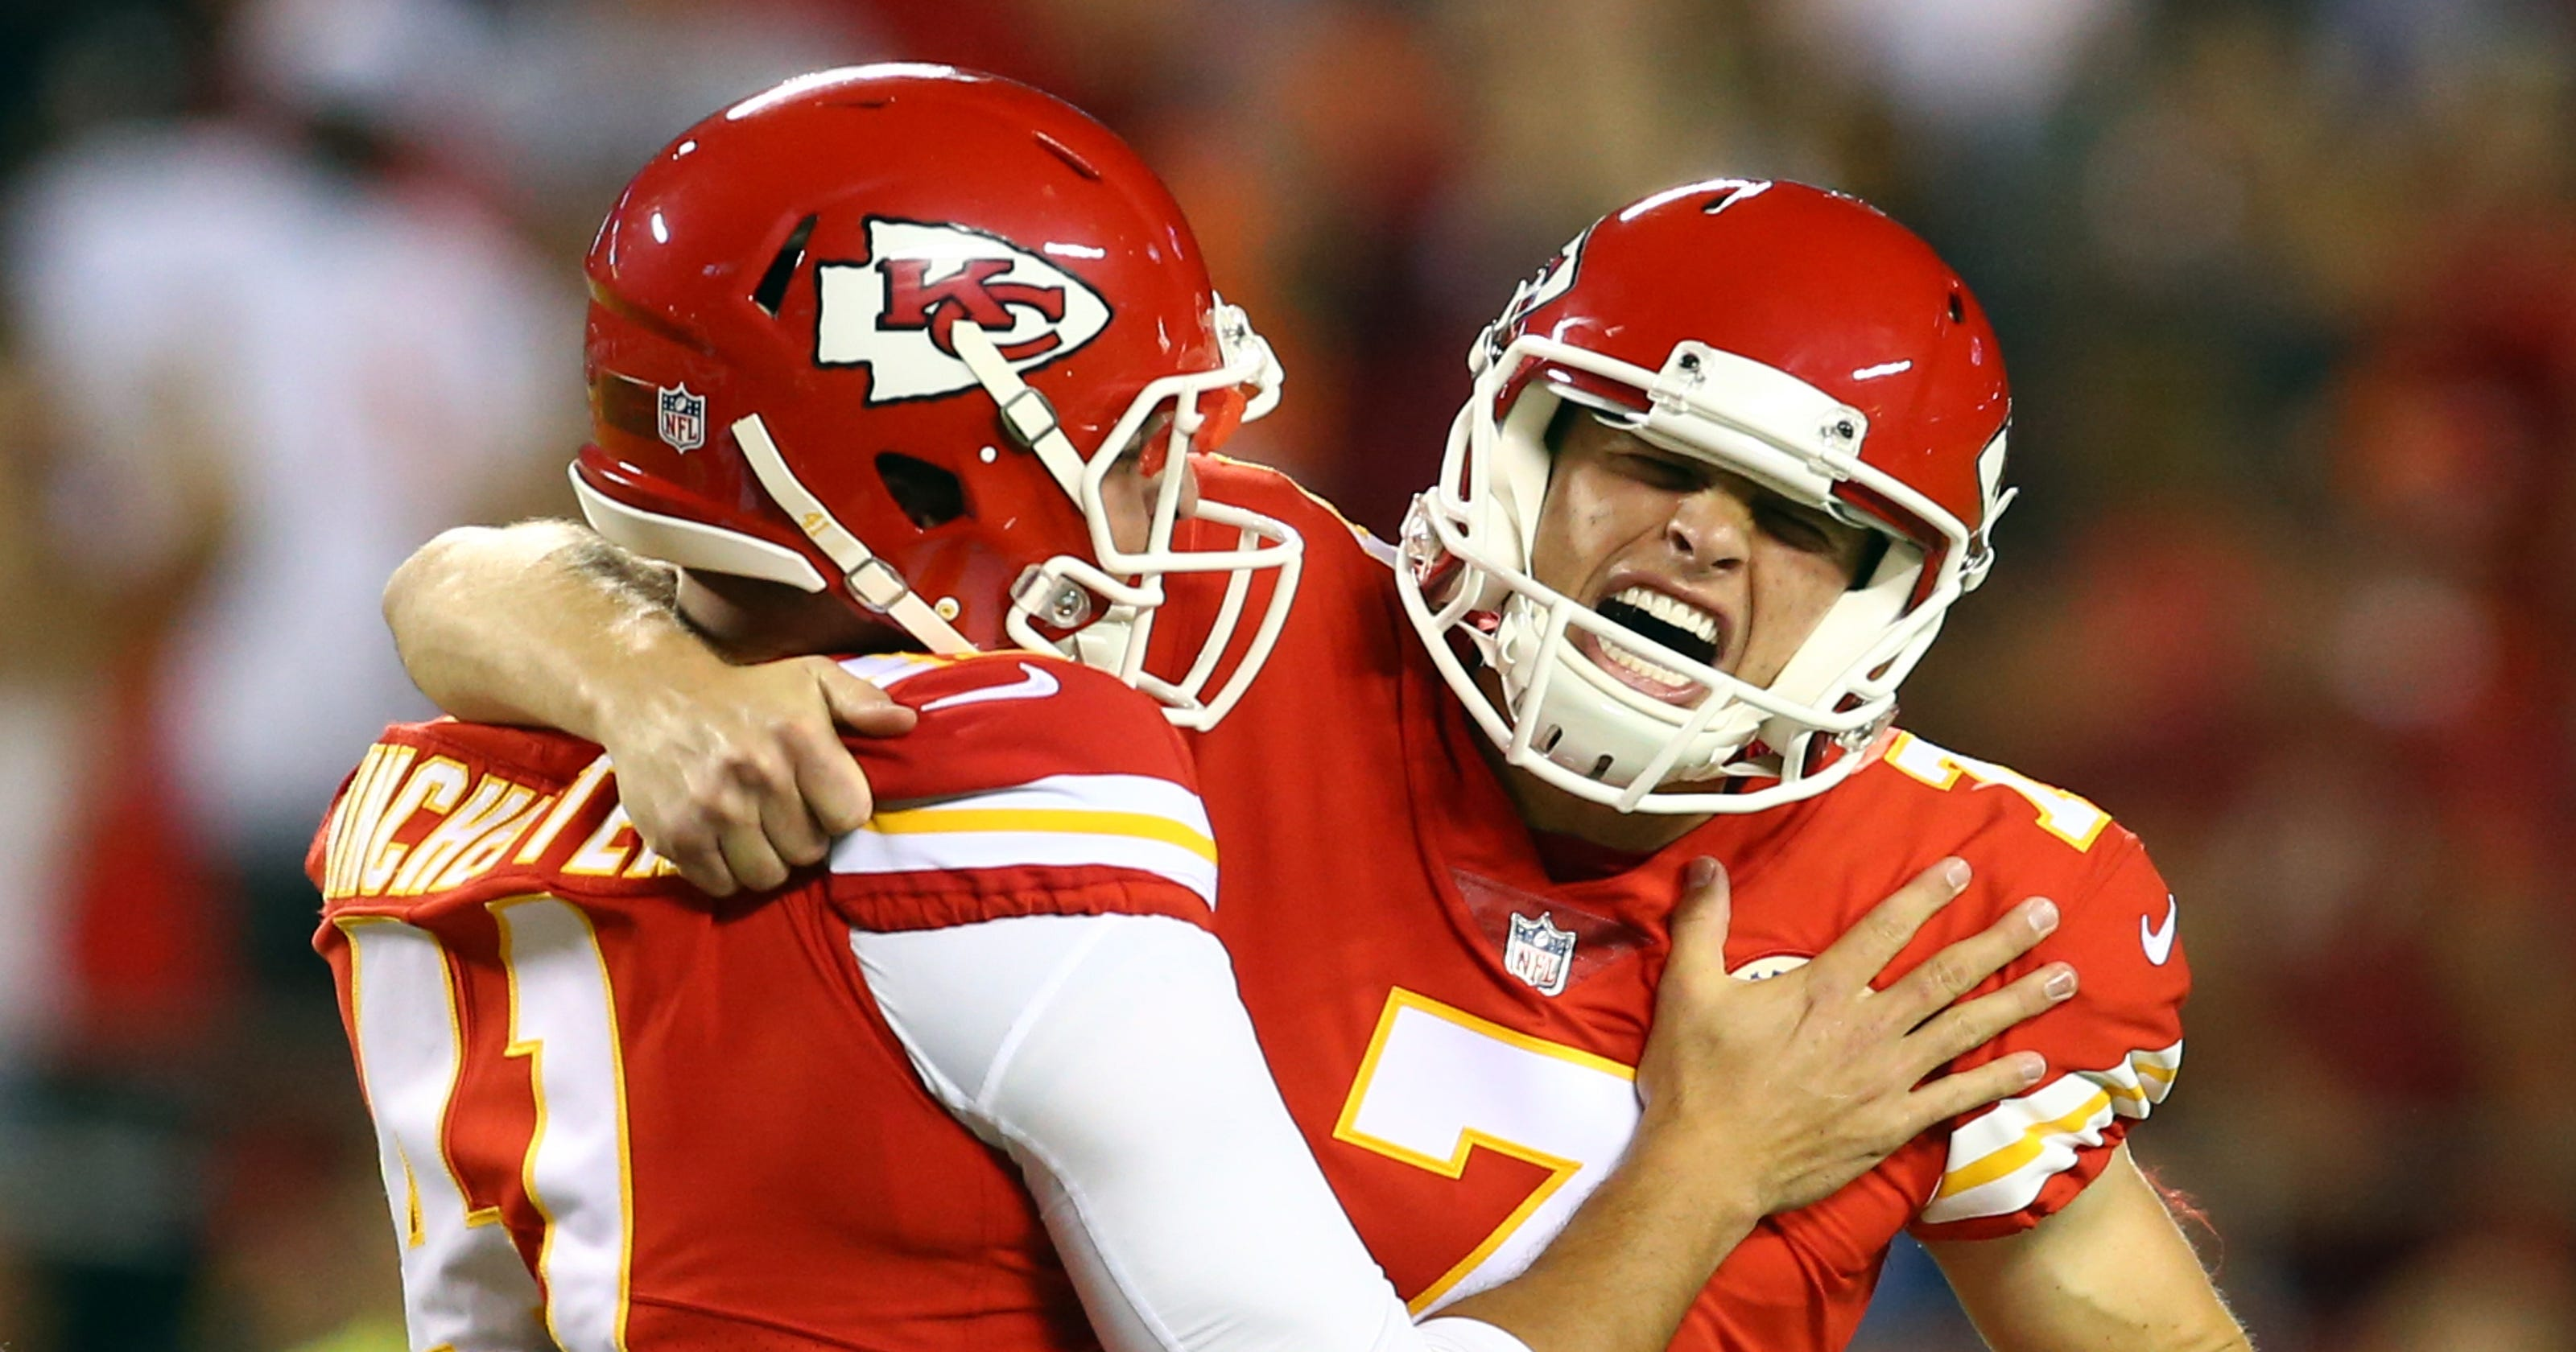 Harrison Butker nails game-winner for Chiefs after learning from miss e0a3126ab